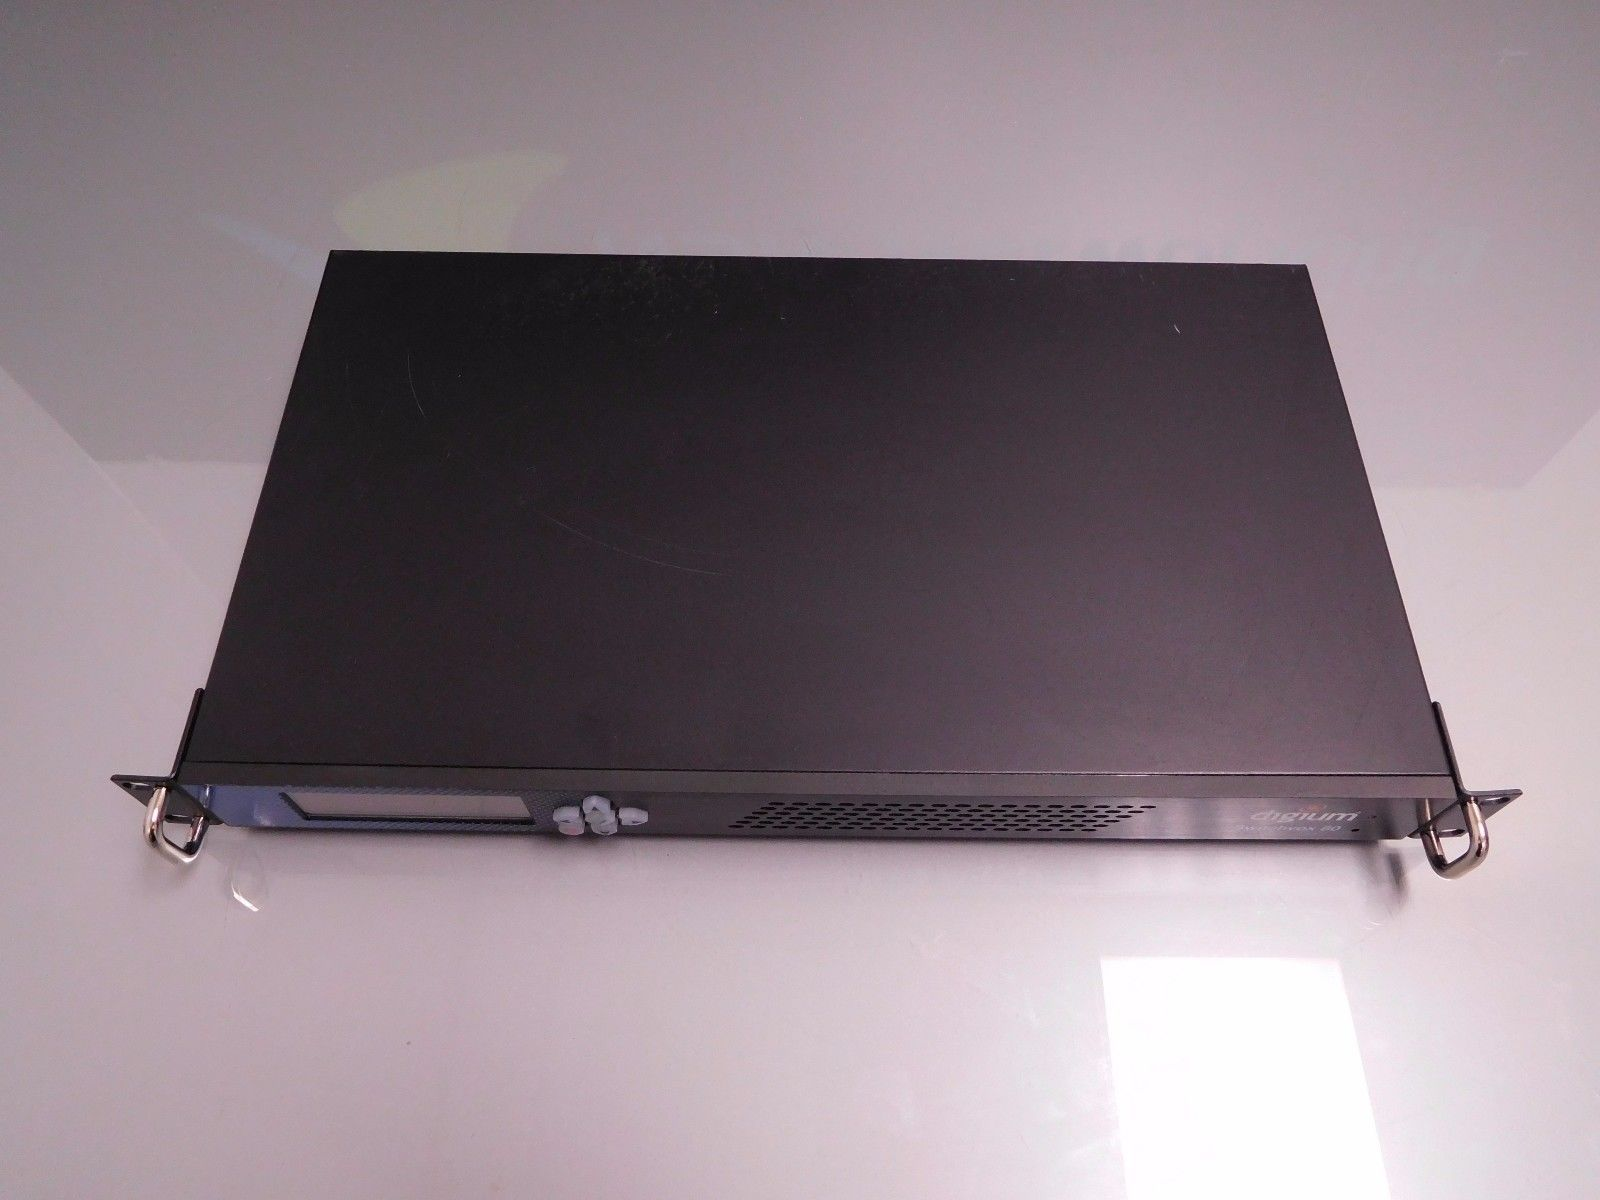 Digium Switchvox 80 Asterisk VoIP System 2AS80001LF-D 2AS80001LF image 5